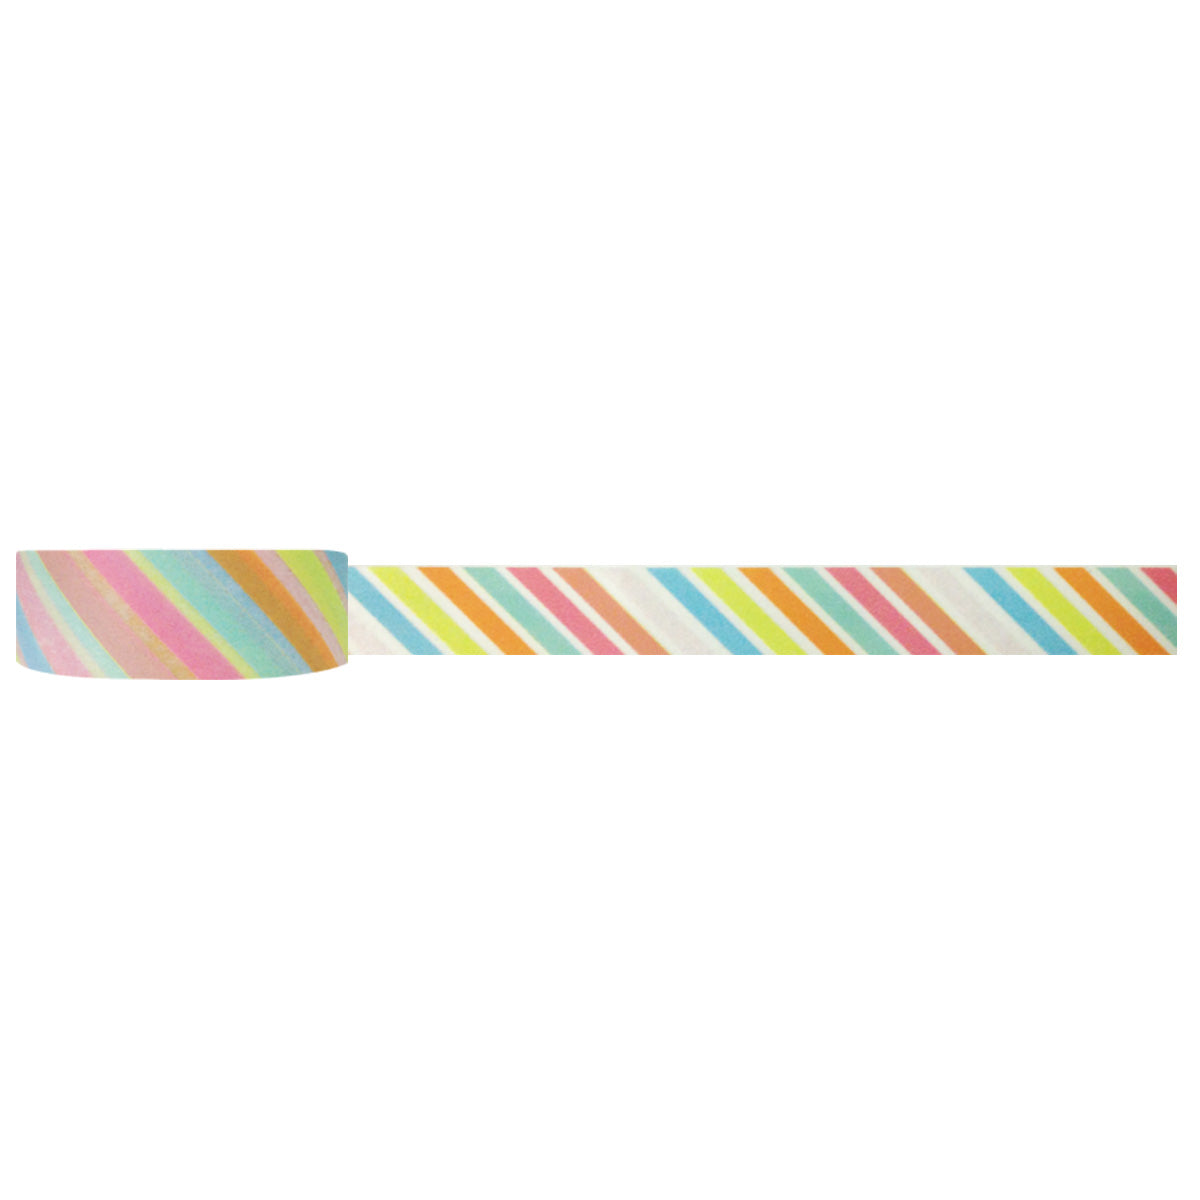 Wrapables Striped Washi Masking Tape, Surfin' Stripes